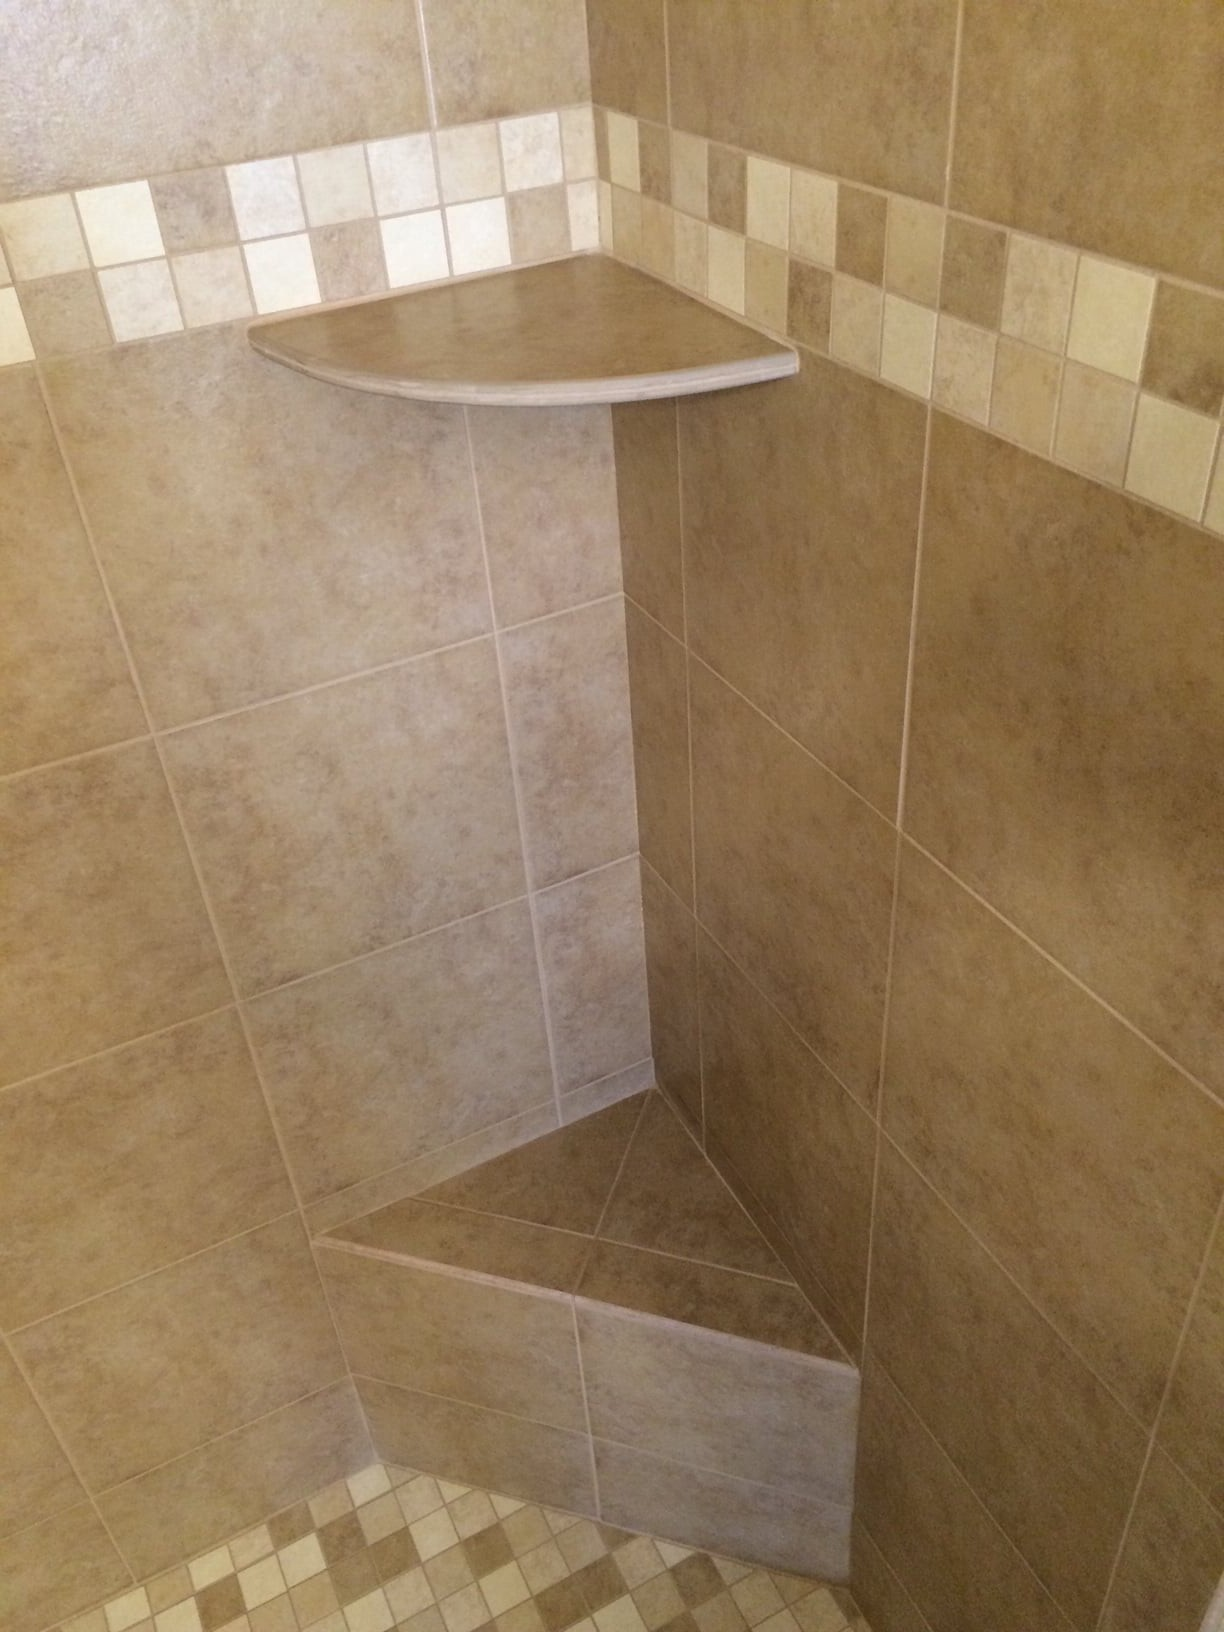 Shower with custom built in bench and shelf in Peoria, AZ